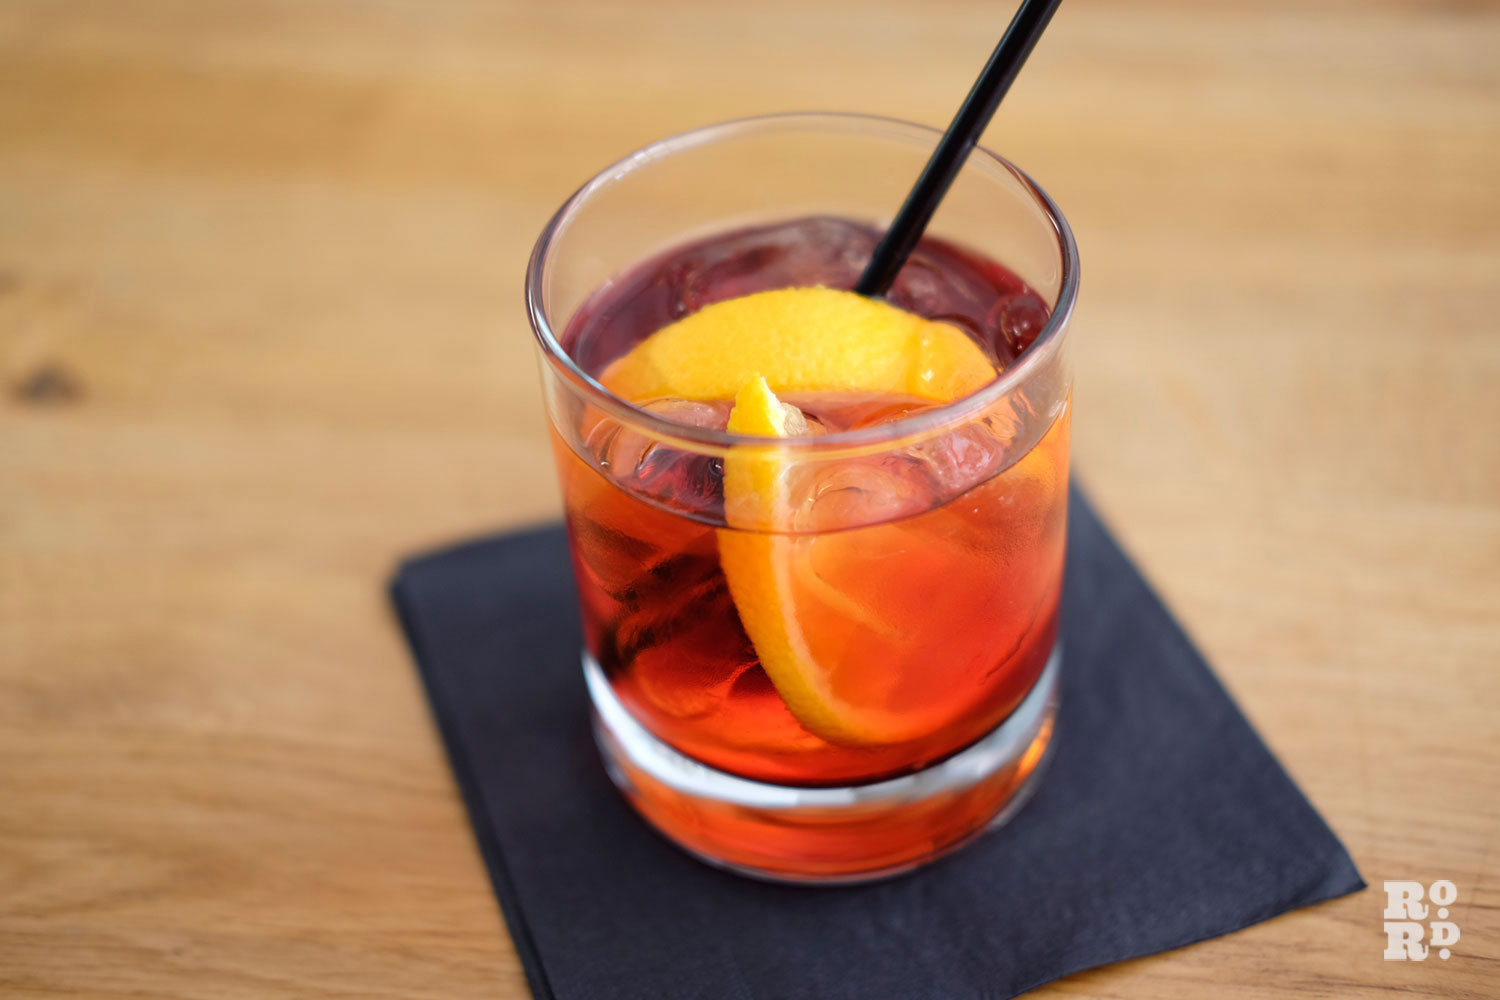 Negroni cocktail on a napkin